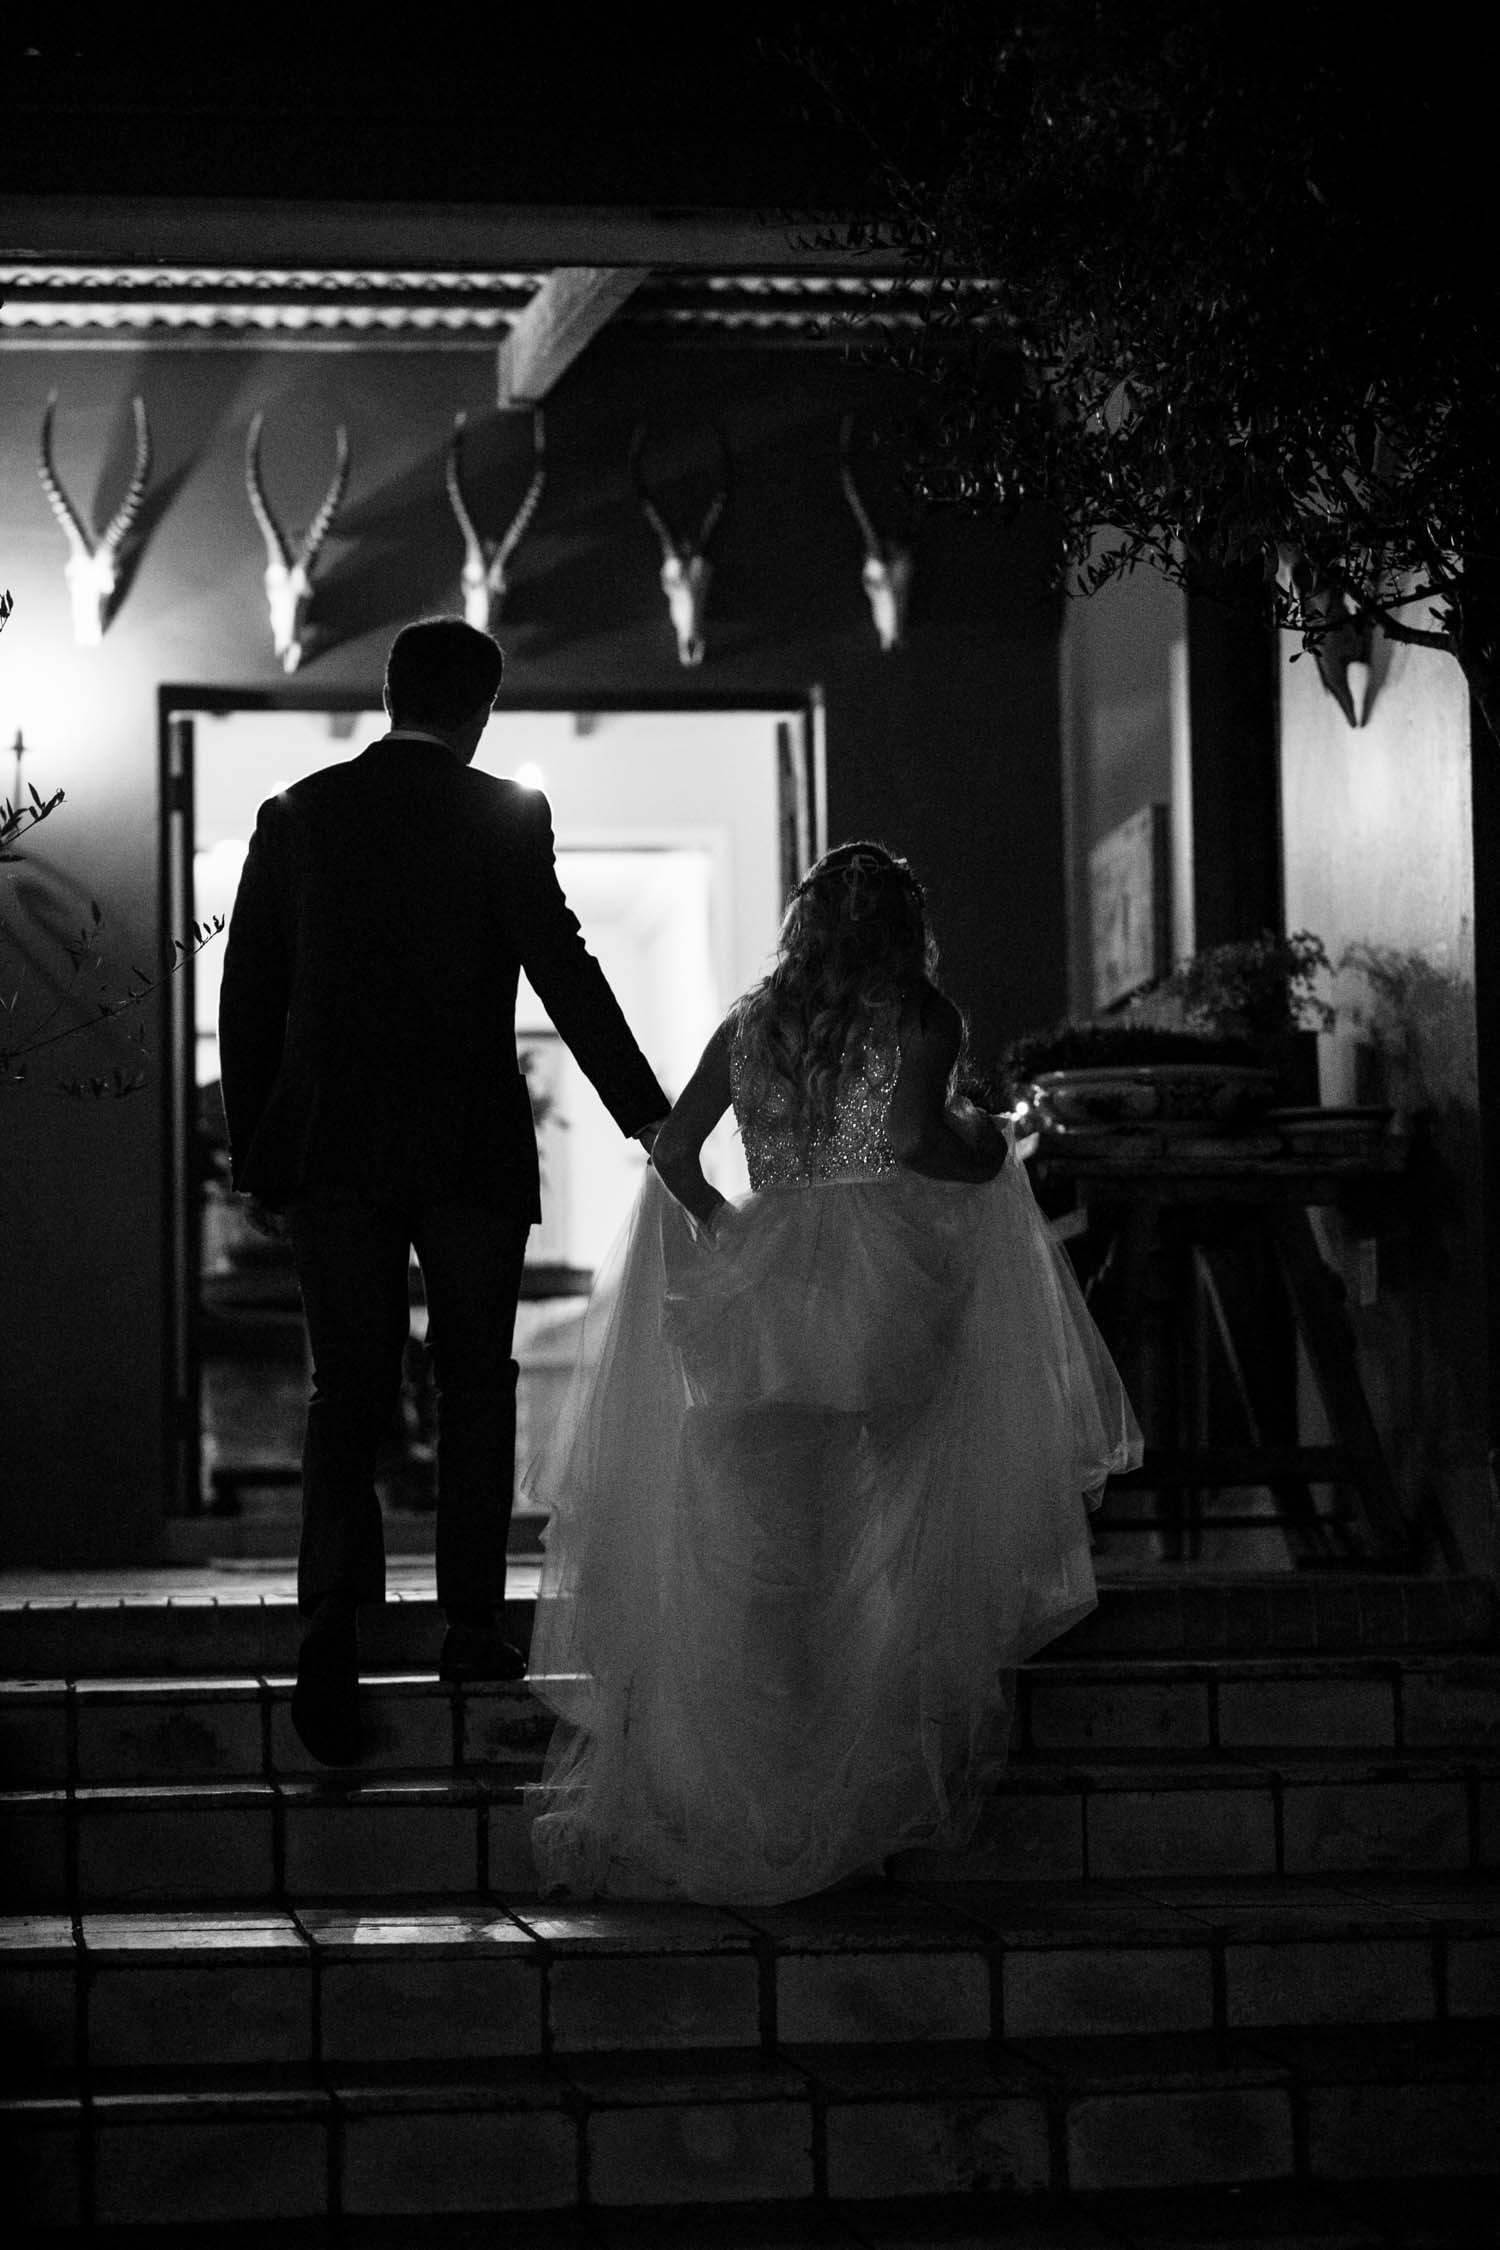 Night shot of bride and groom on stairs